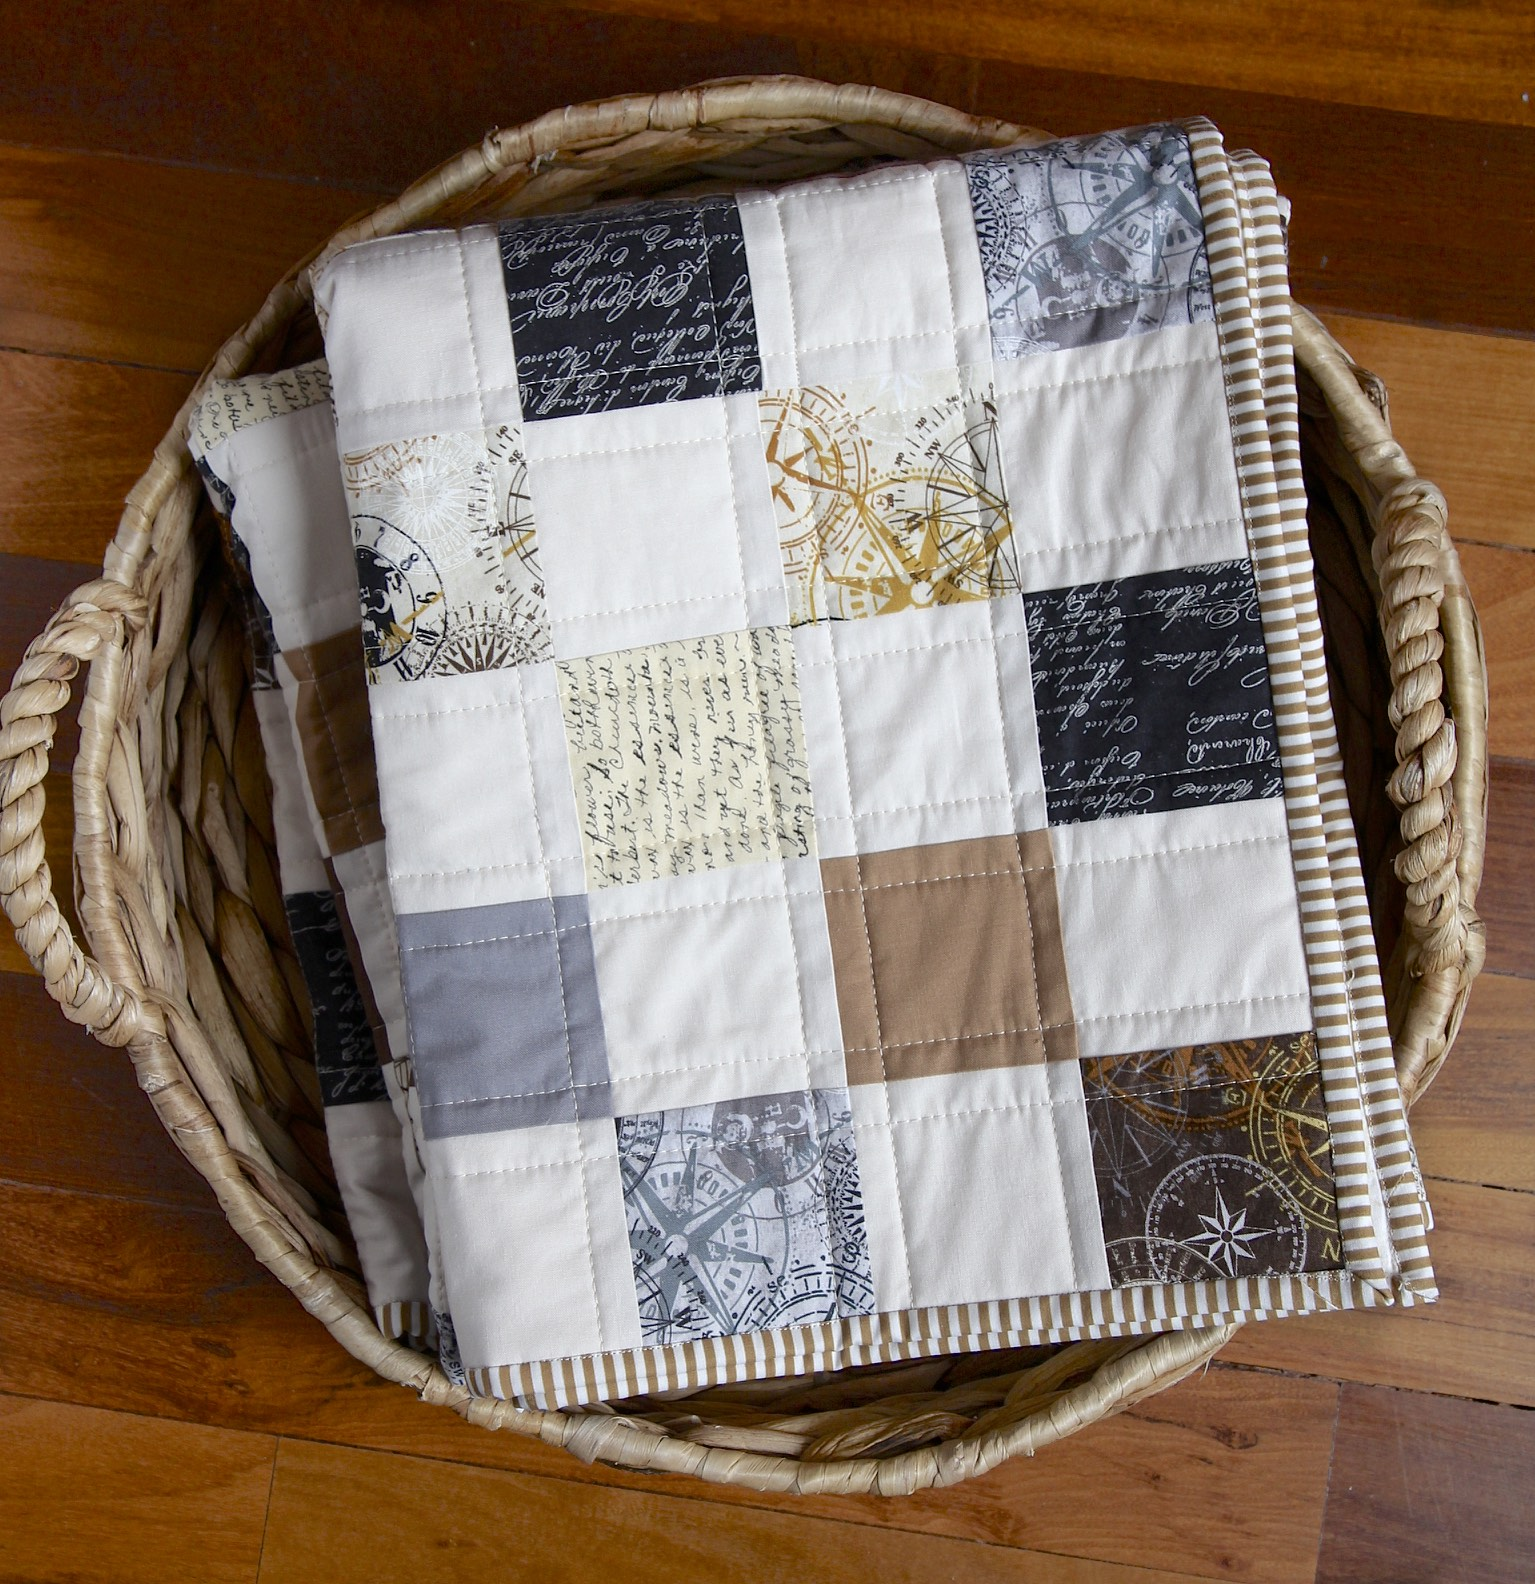 Compass Quilt in basket